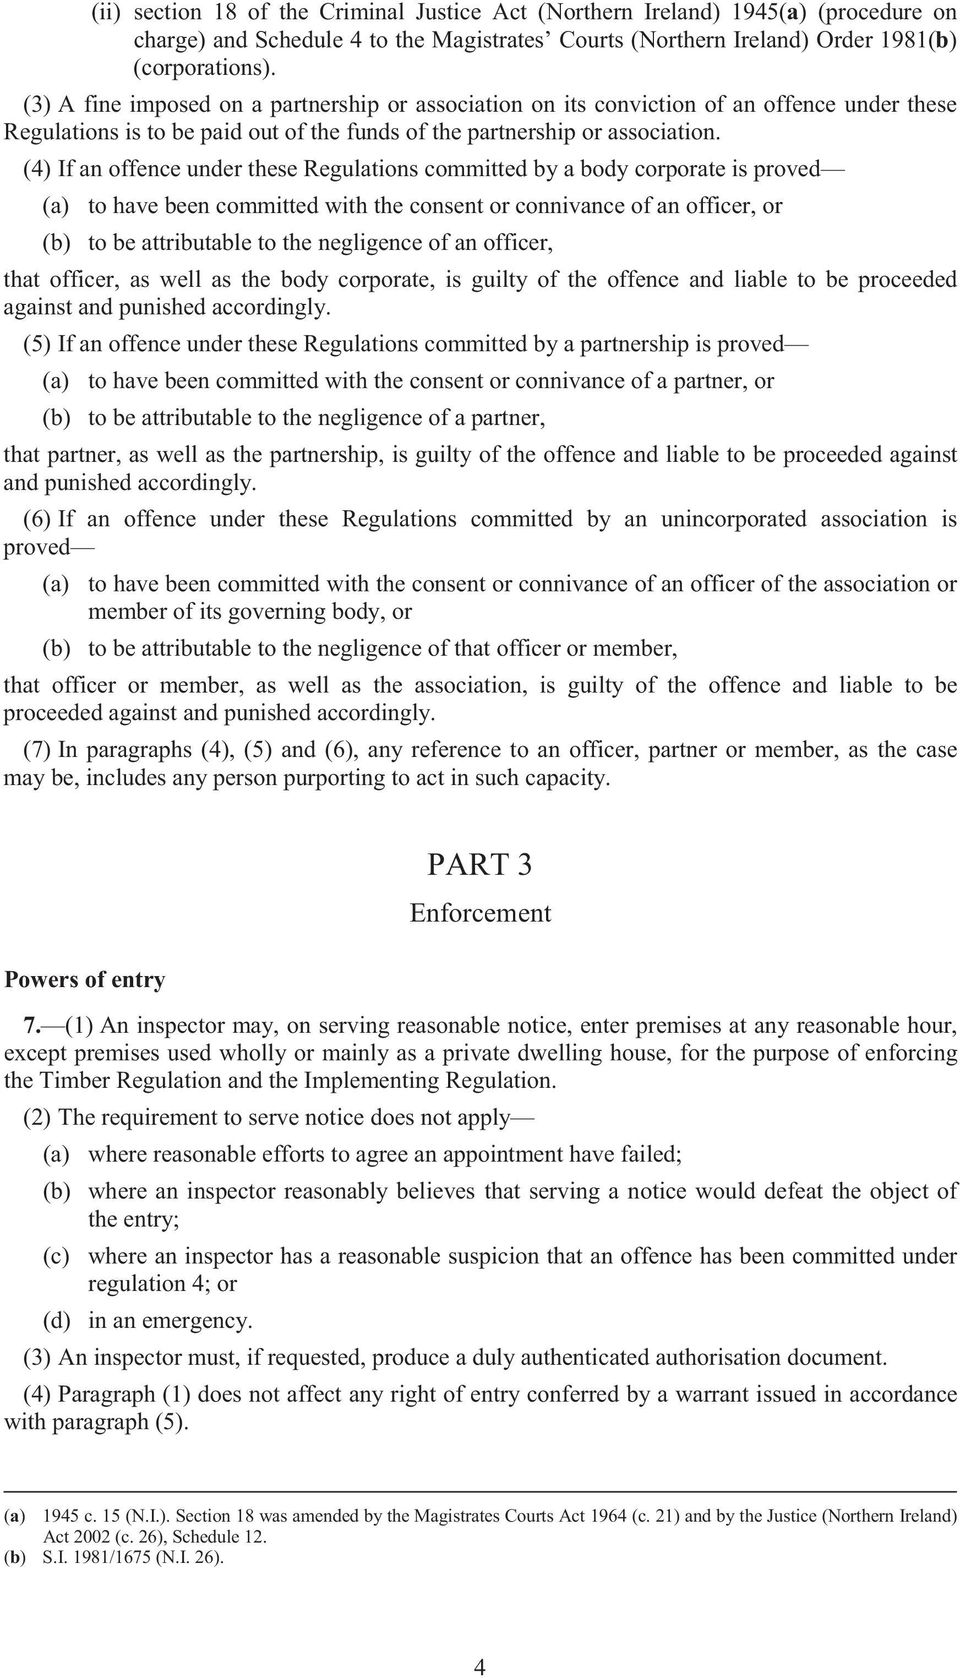 (4) If an offence under these Regulations committed by a body corporate is proved (a) to have been committed with the consent or connivance of an officer, or (b) to be attributable to the negligence